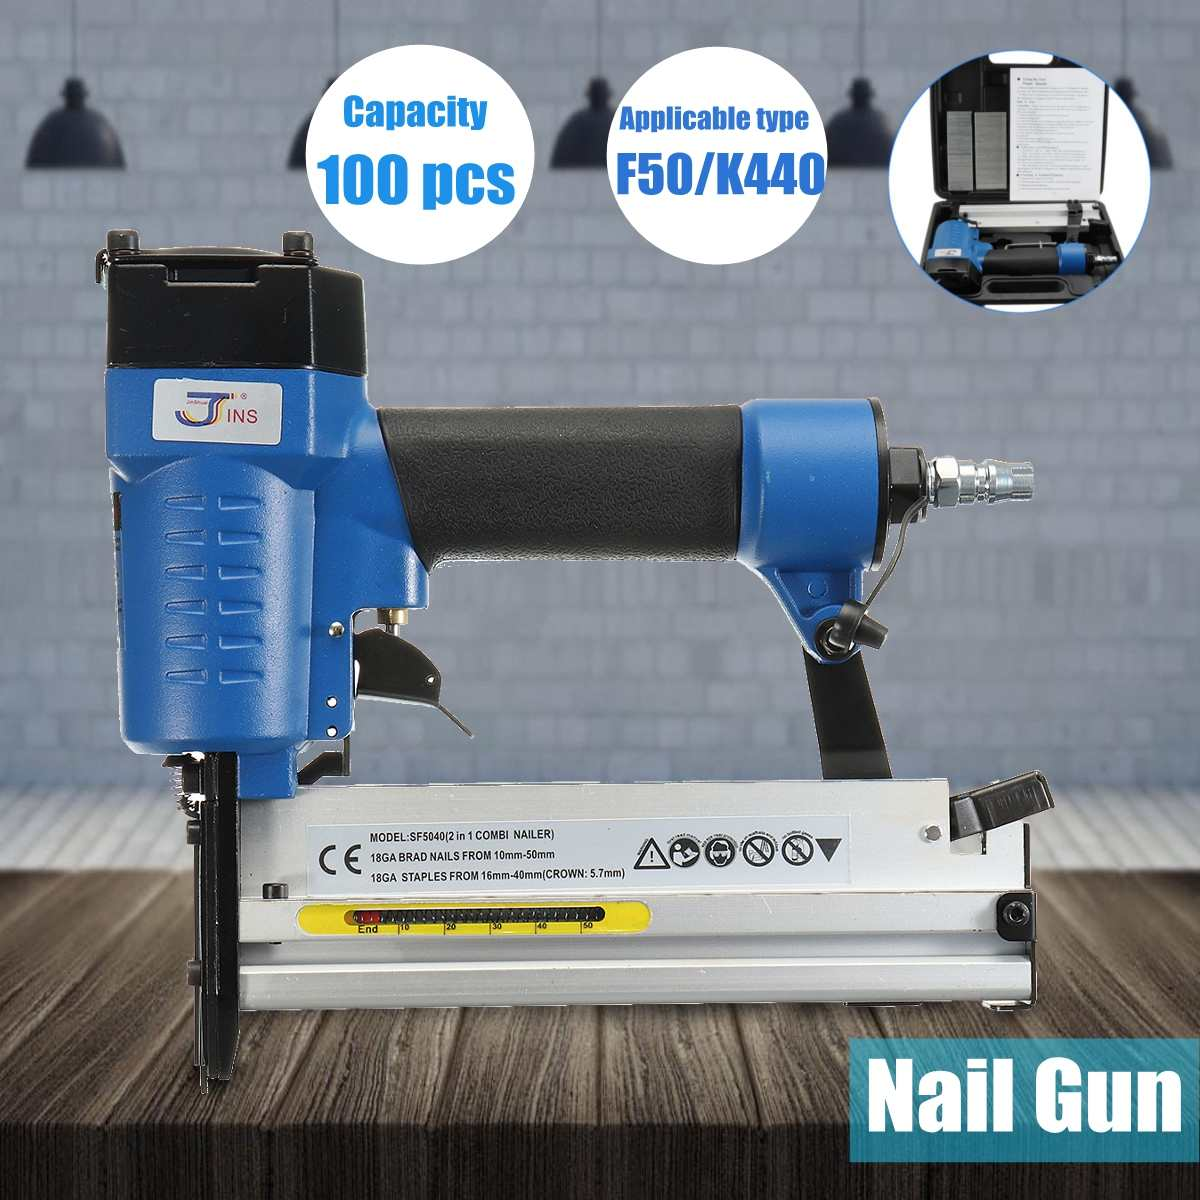 Portable 2 in 1 F50/K440 Electric Staple Air Nailer G un Straight Finishing Nail G un Woodworking ToolPortable 2 in 1 F50/K440 Electric Staple Air Nailer G un Straight Finishing Nail G un Woodworking Tool